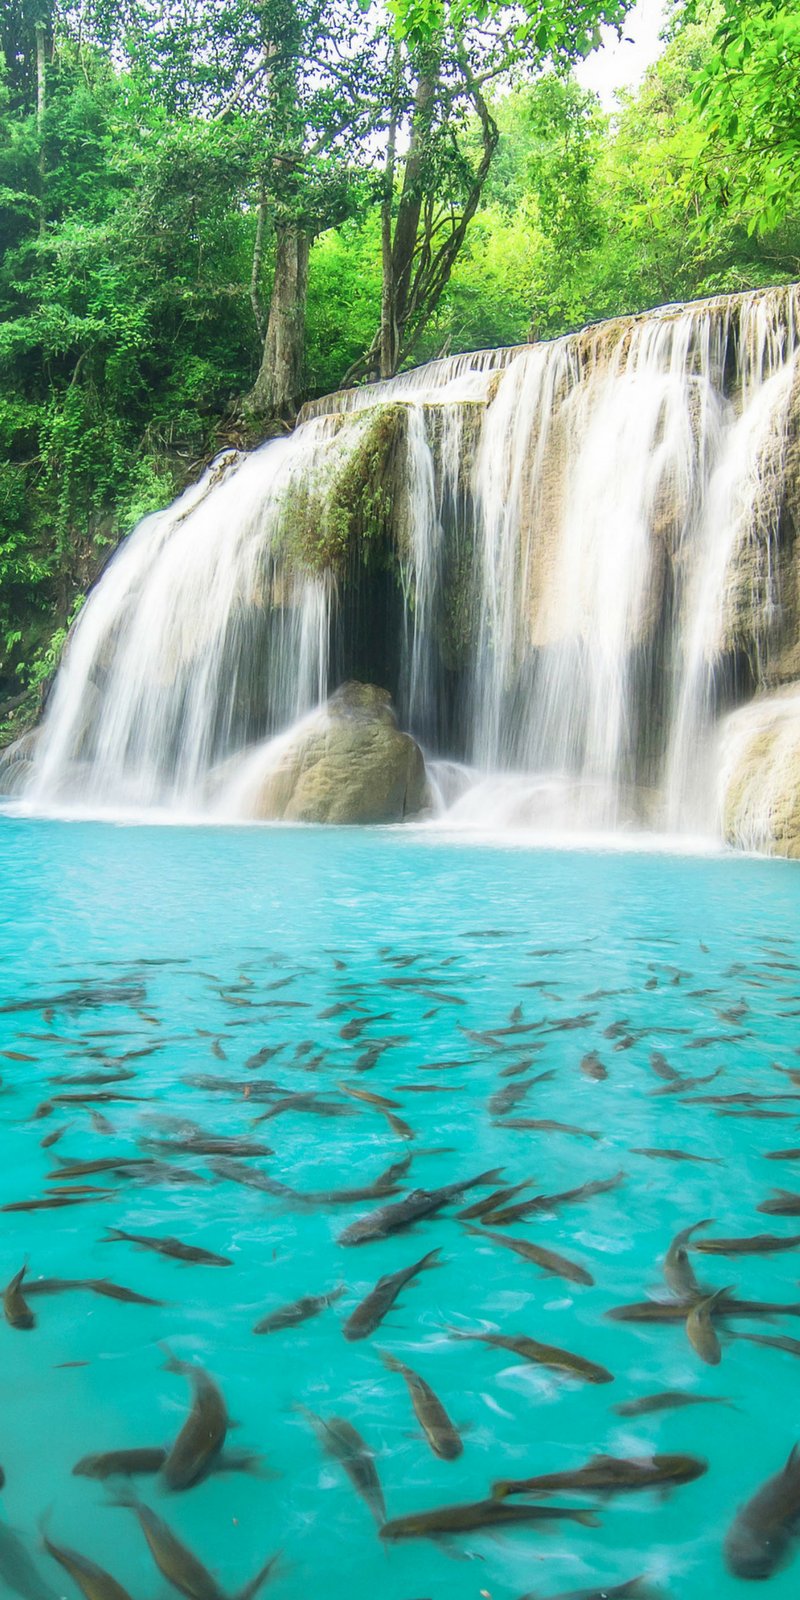 Asia Waterfalls: The 10 Most Beautiful Waterfalls in Asia | Travel ...